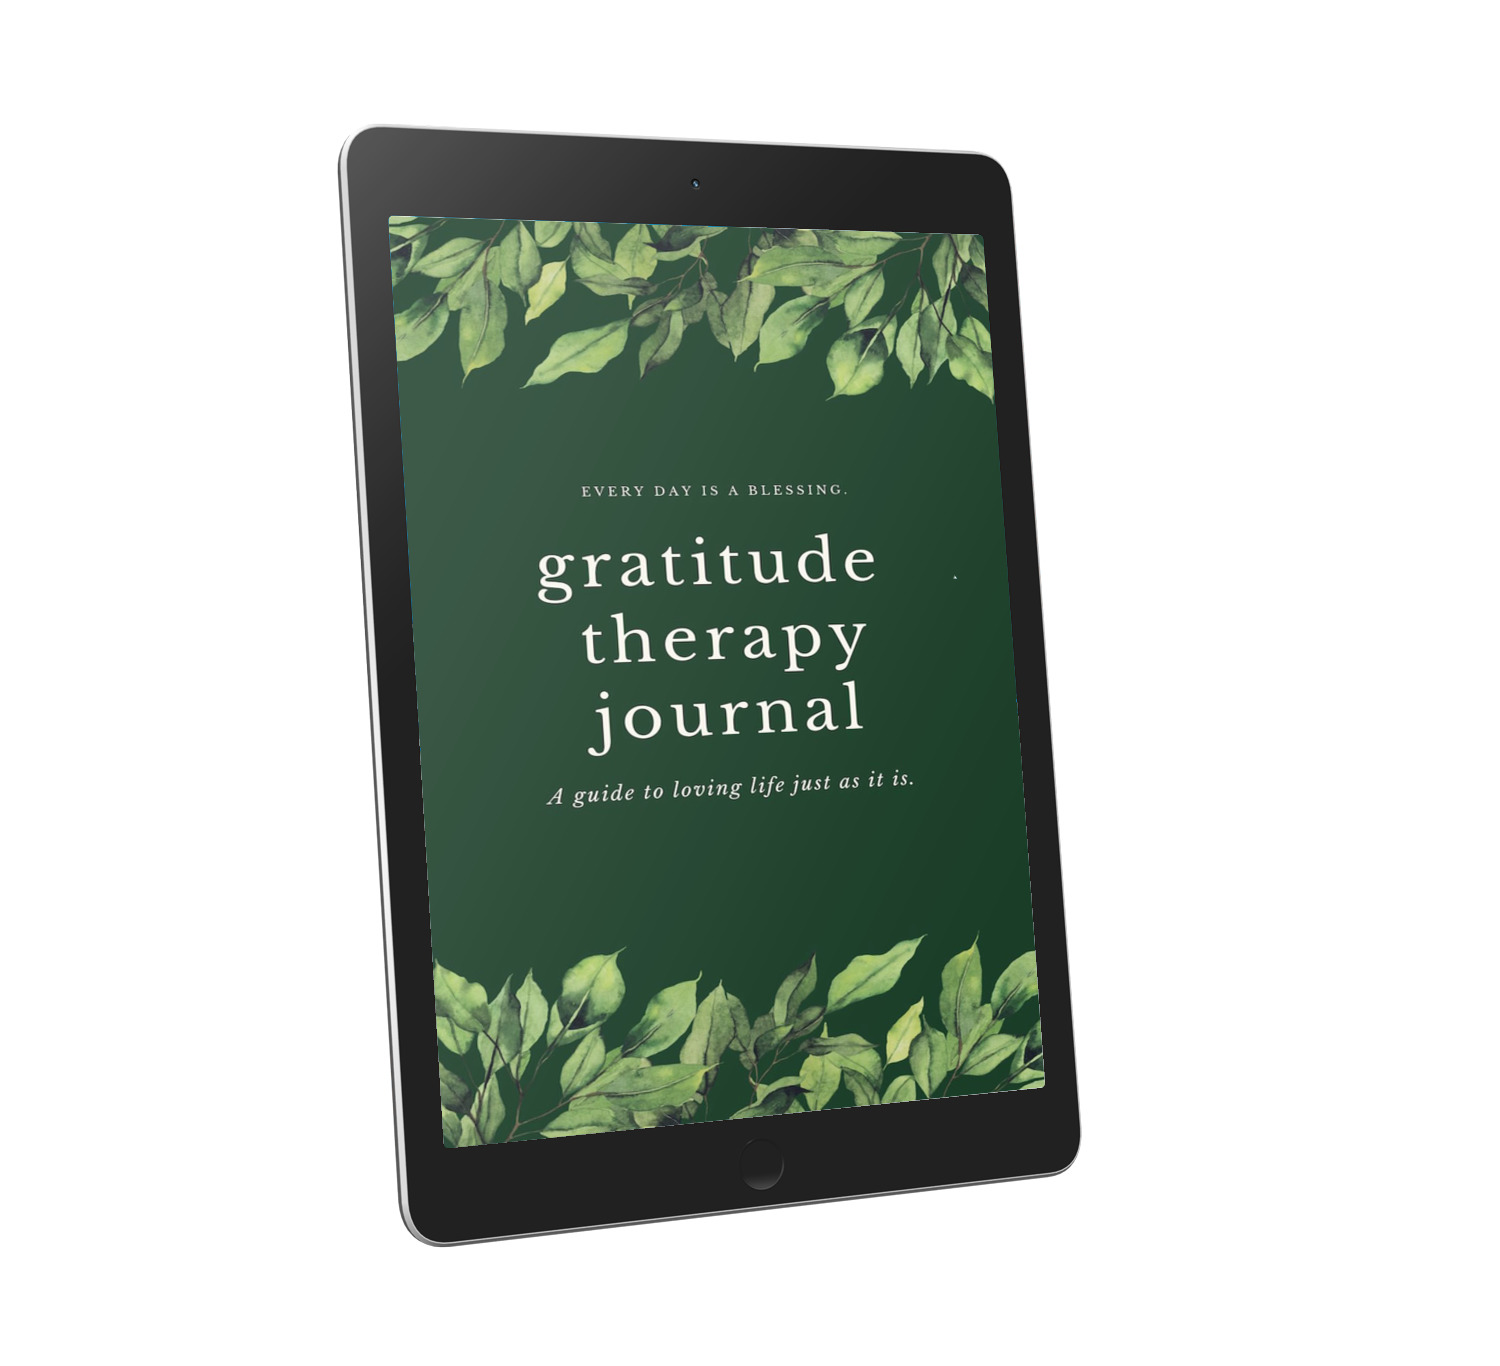 gratitude-therapy-journal.jpg